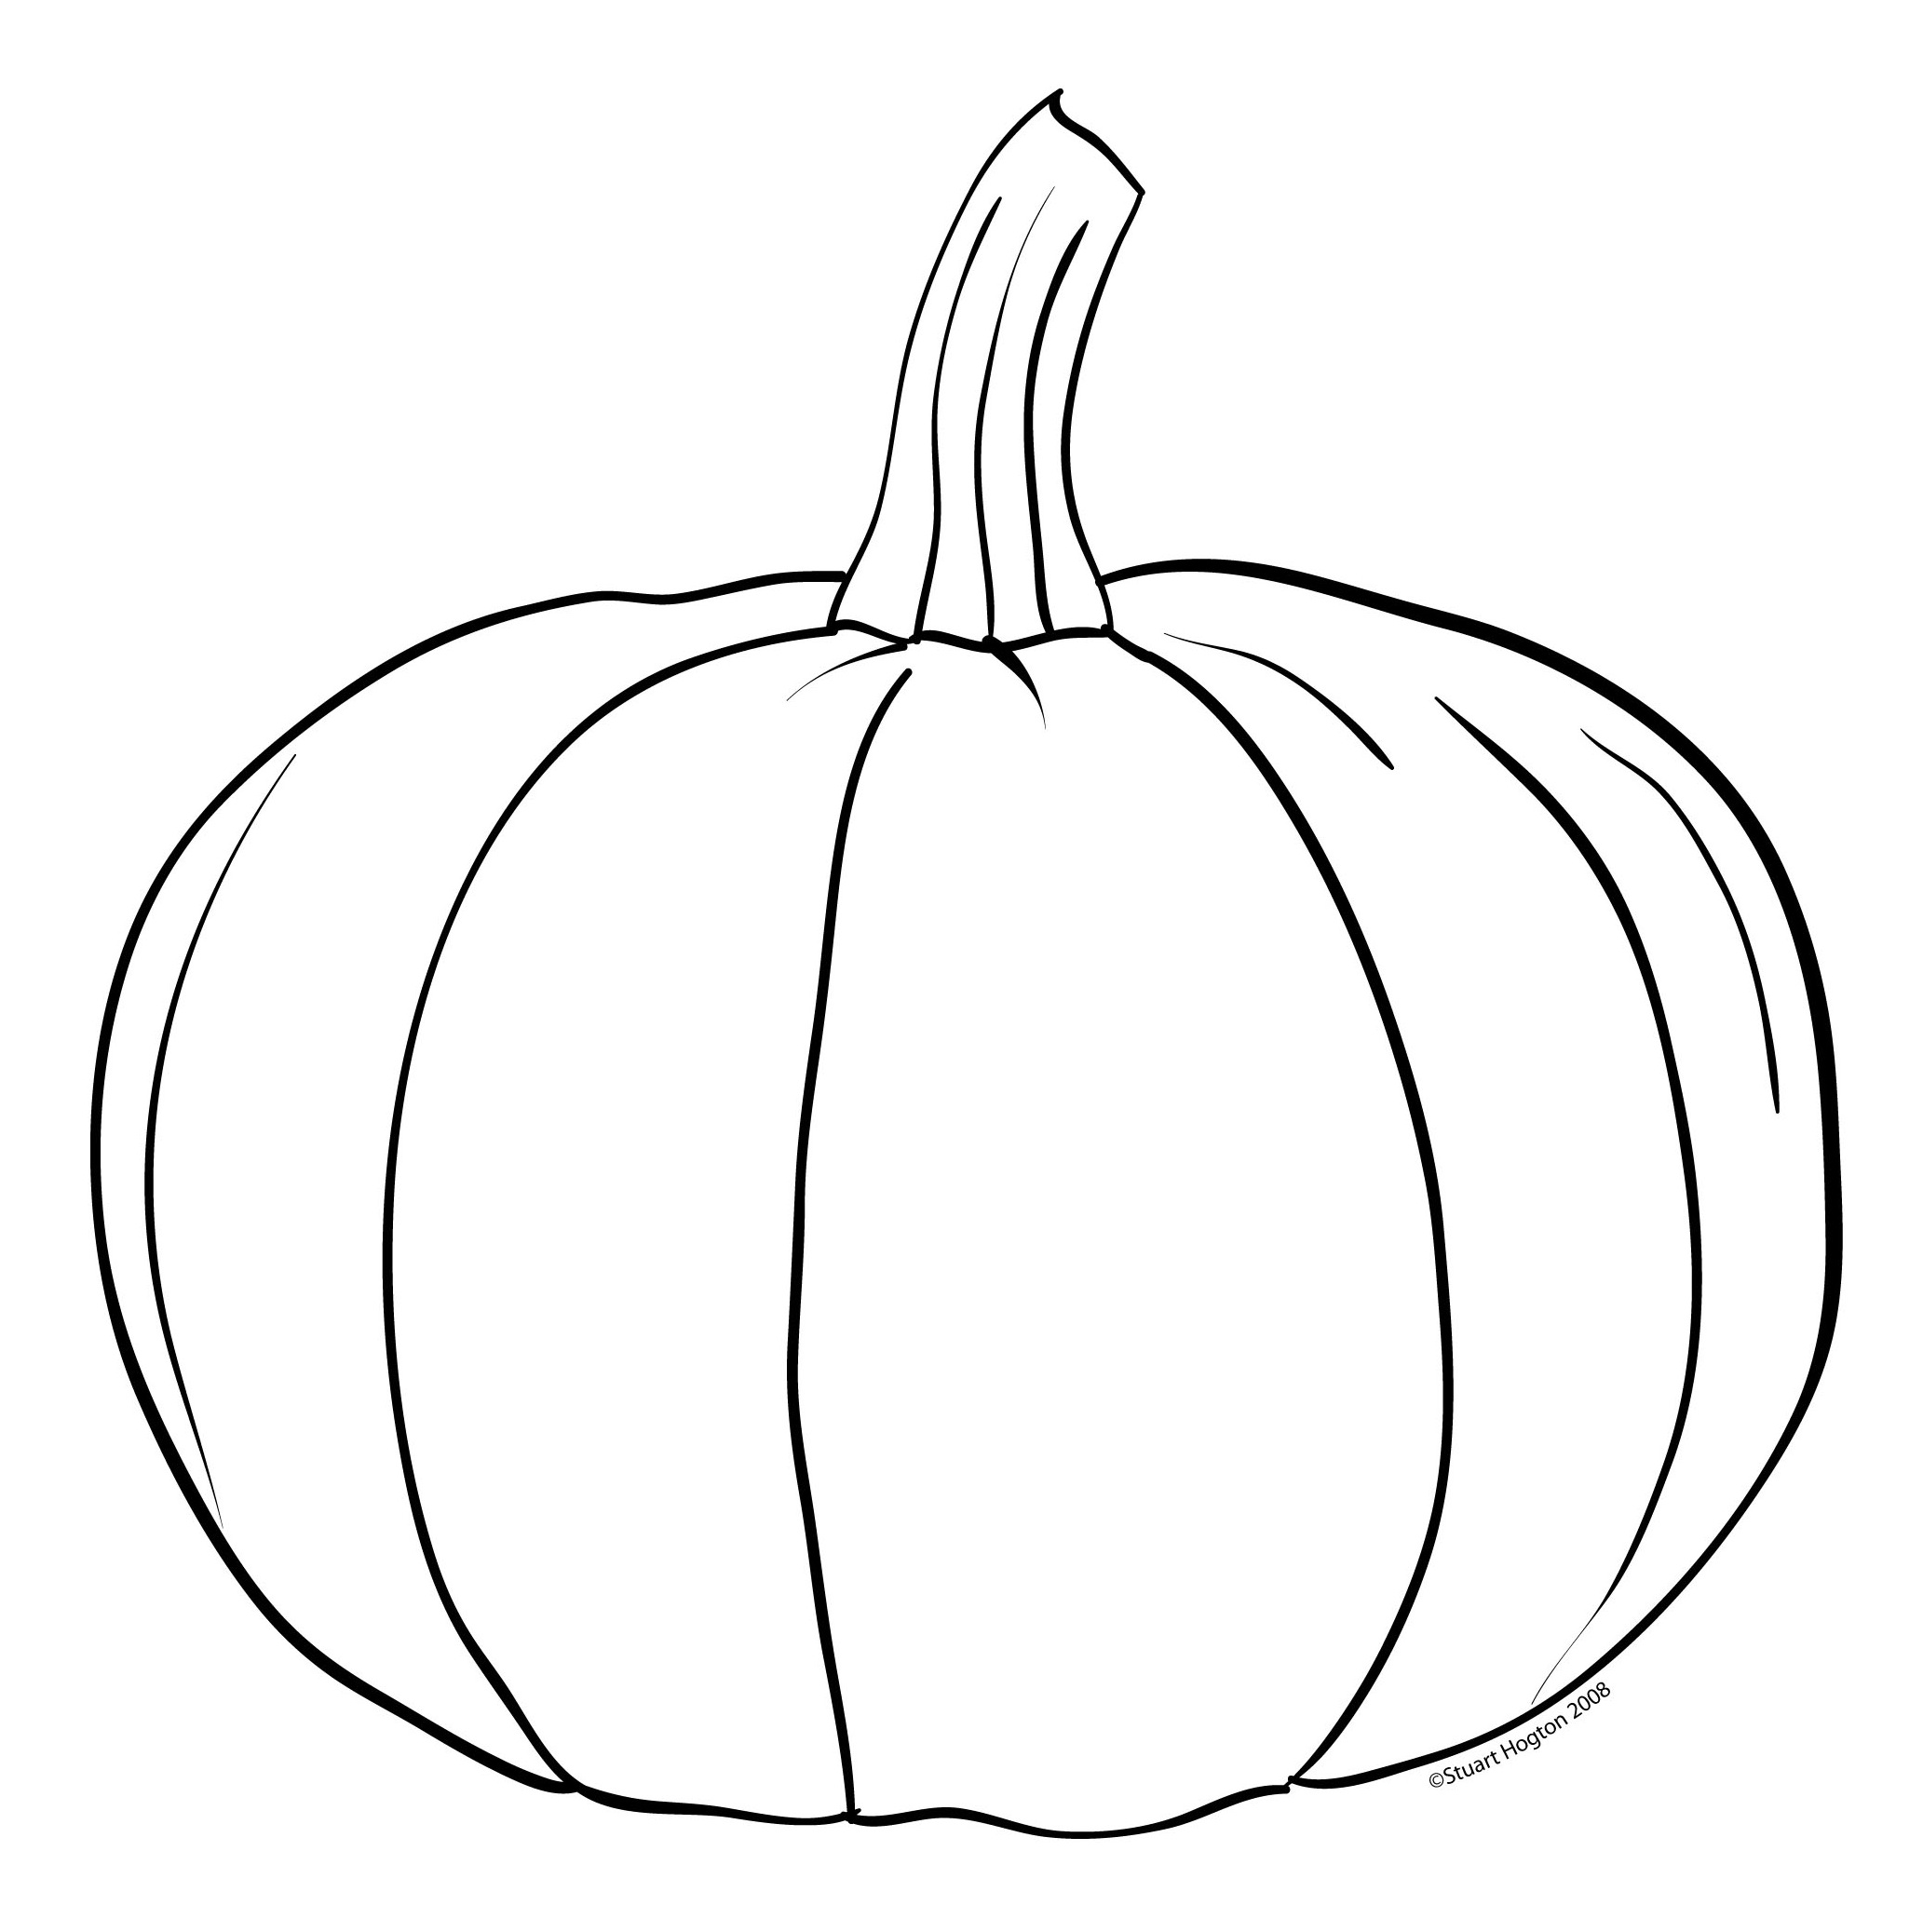 Pumpkins printable clipart for Pumpkin coloring pages for adults